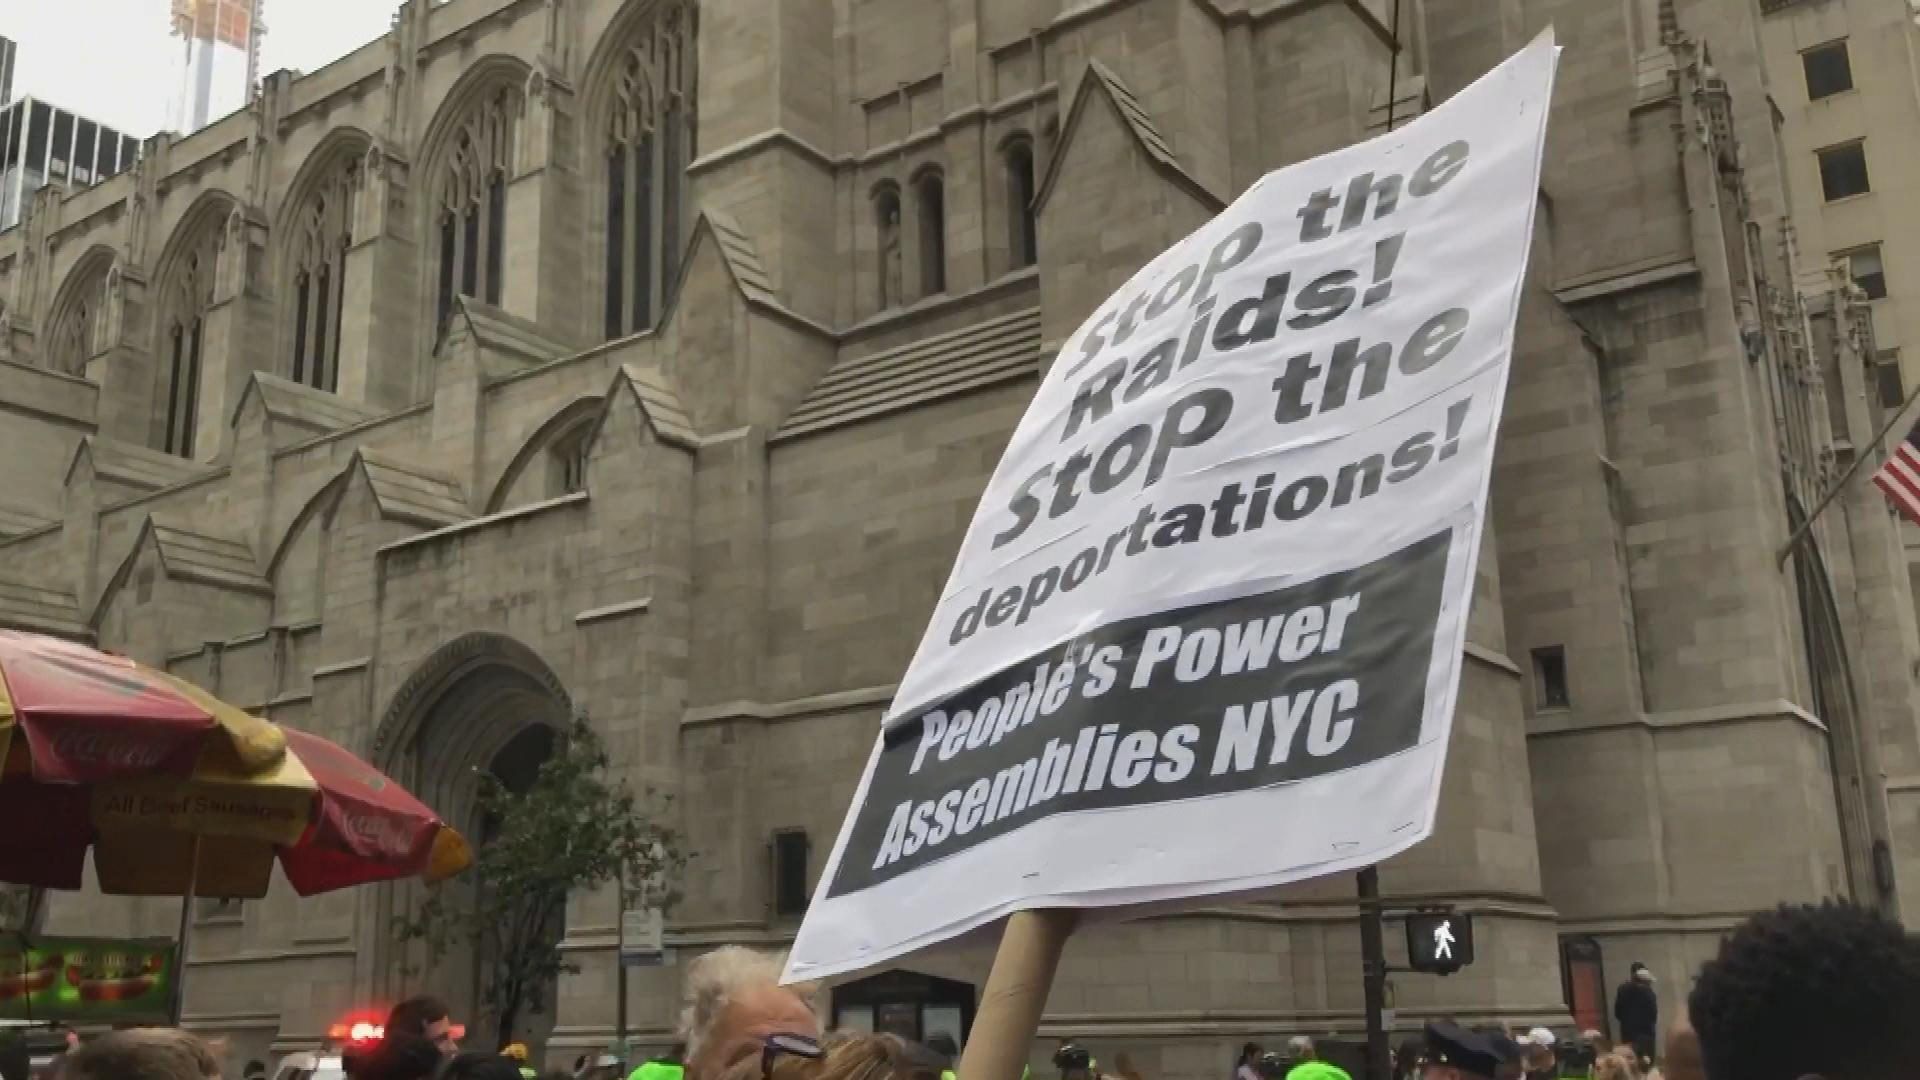 Protesters gather on 5th Avenue to oppose businesses working with ICE